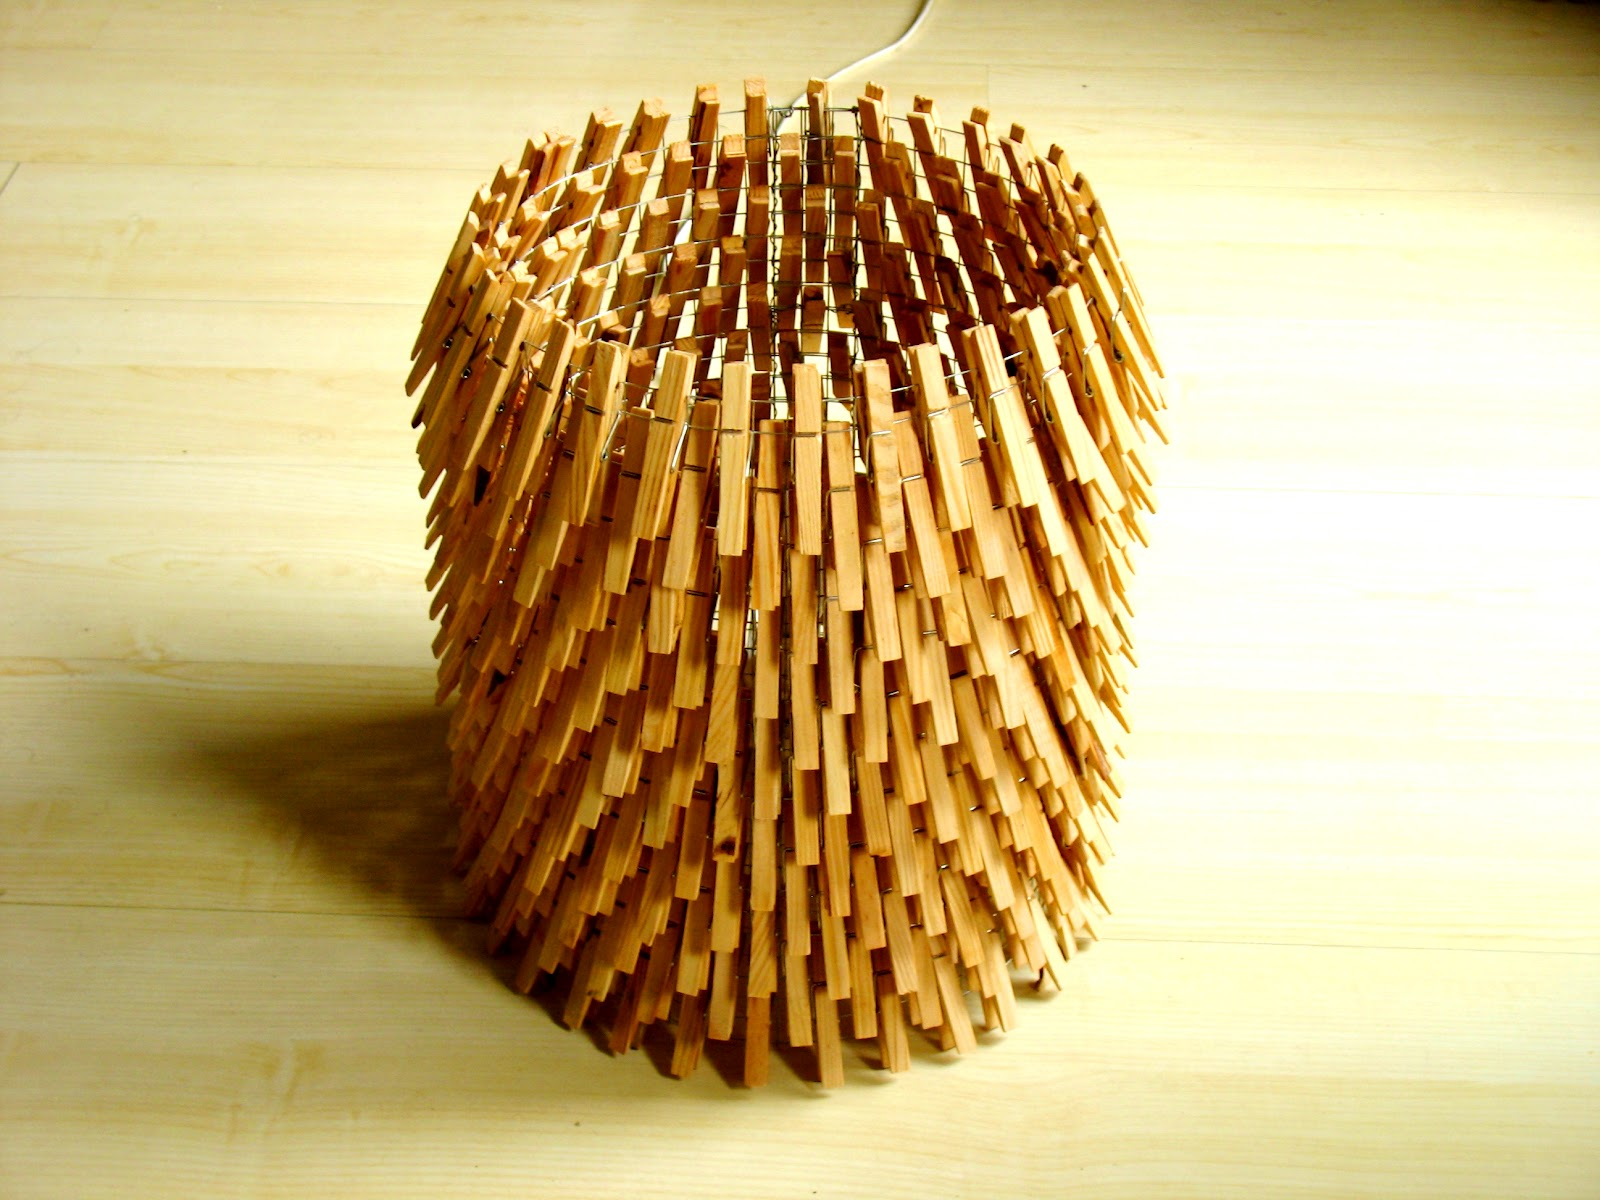 second life of objects: Lamp made with clothes pegs